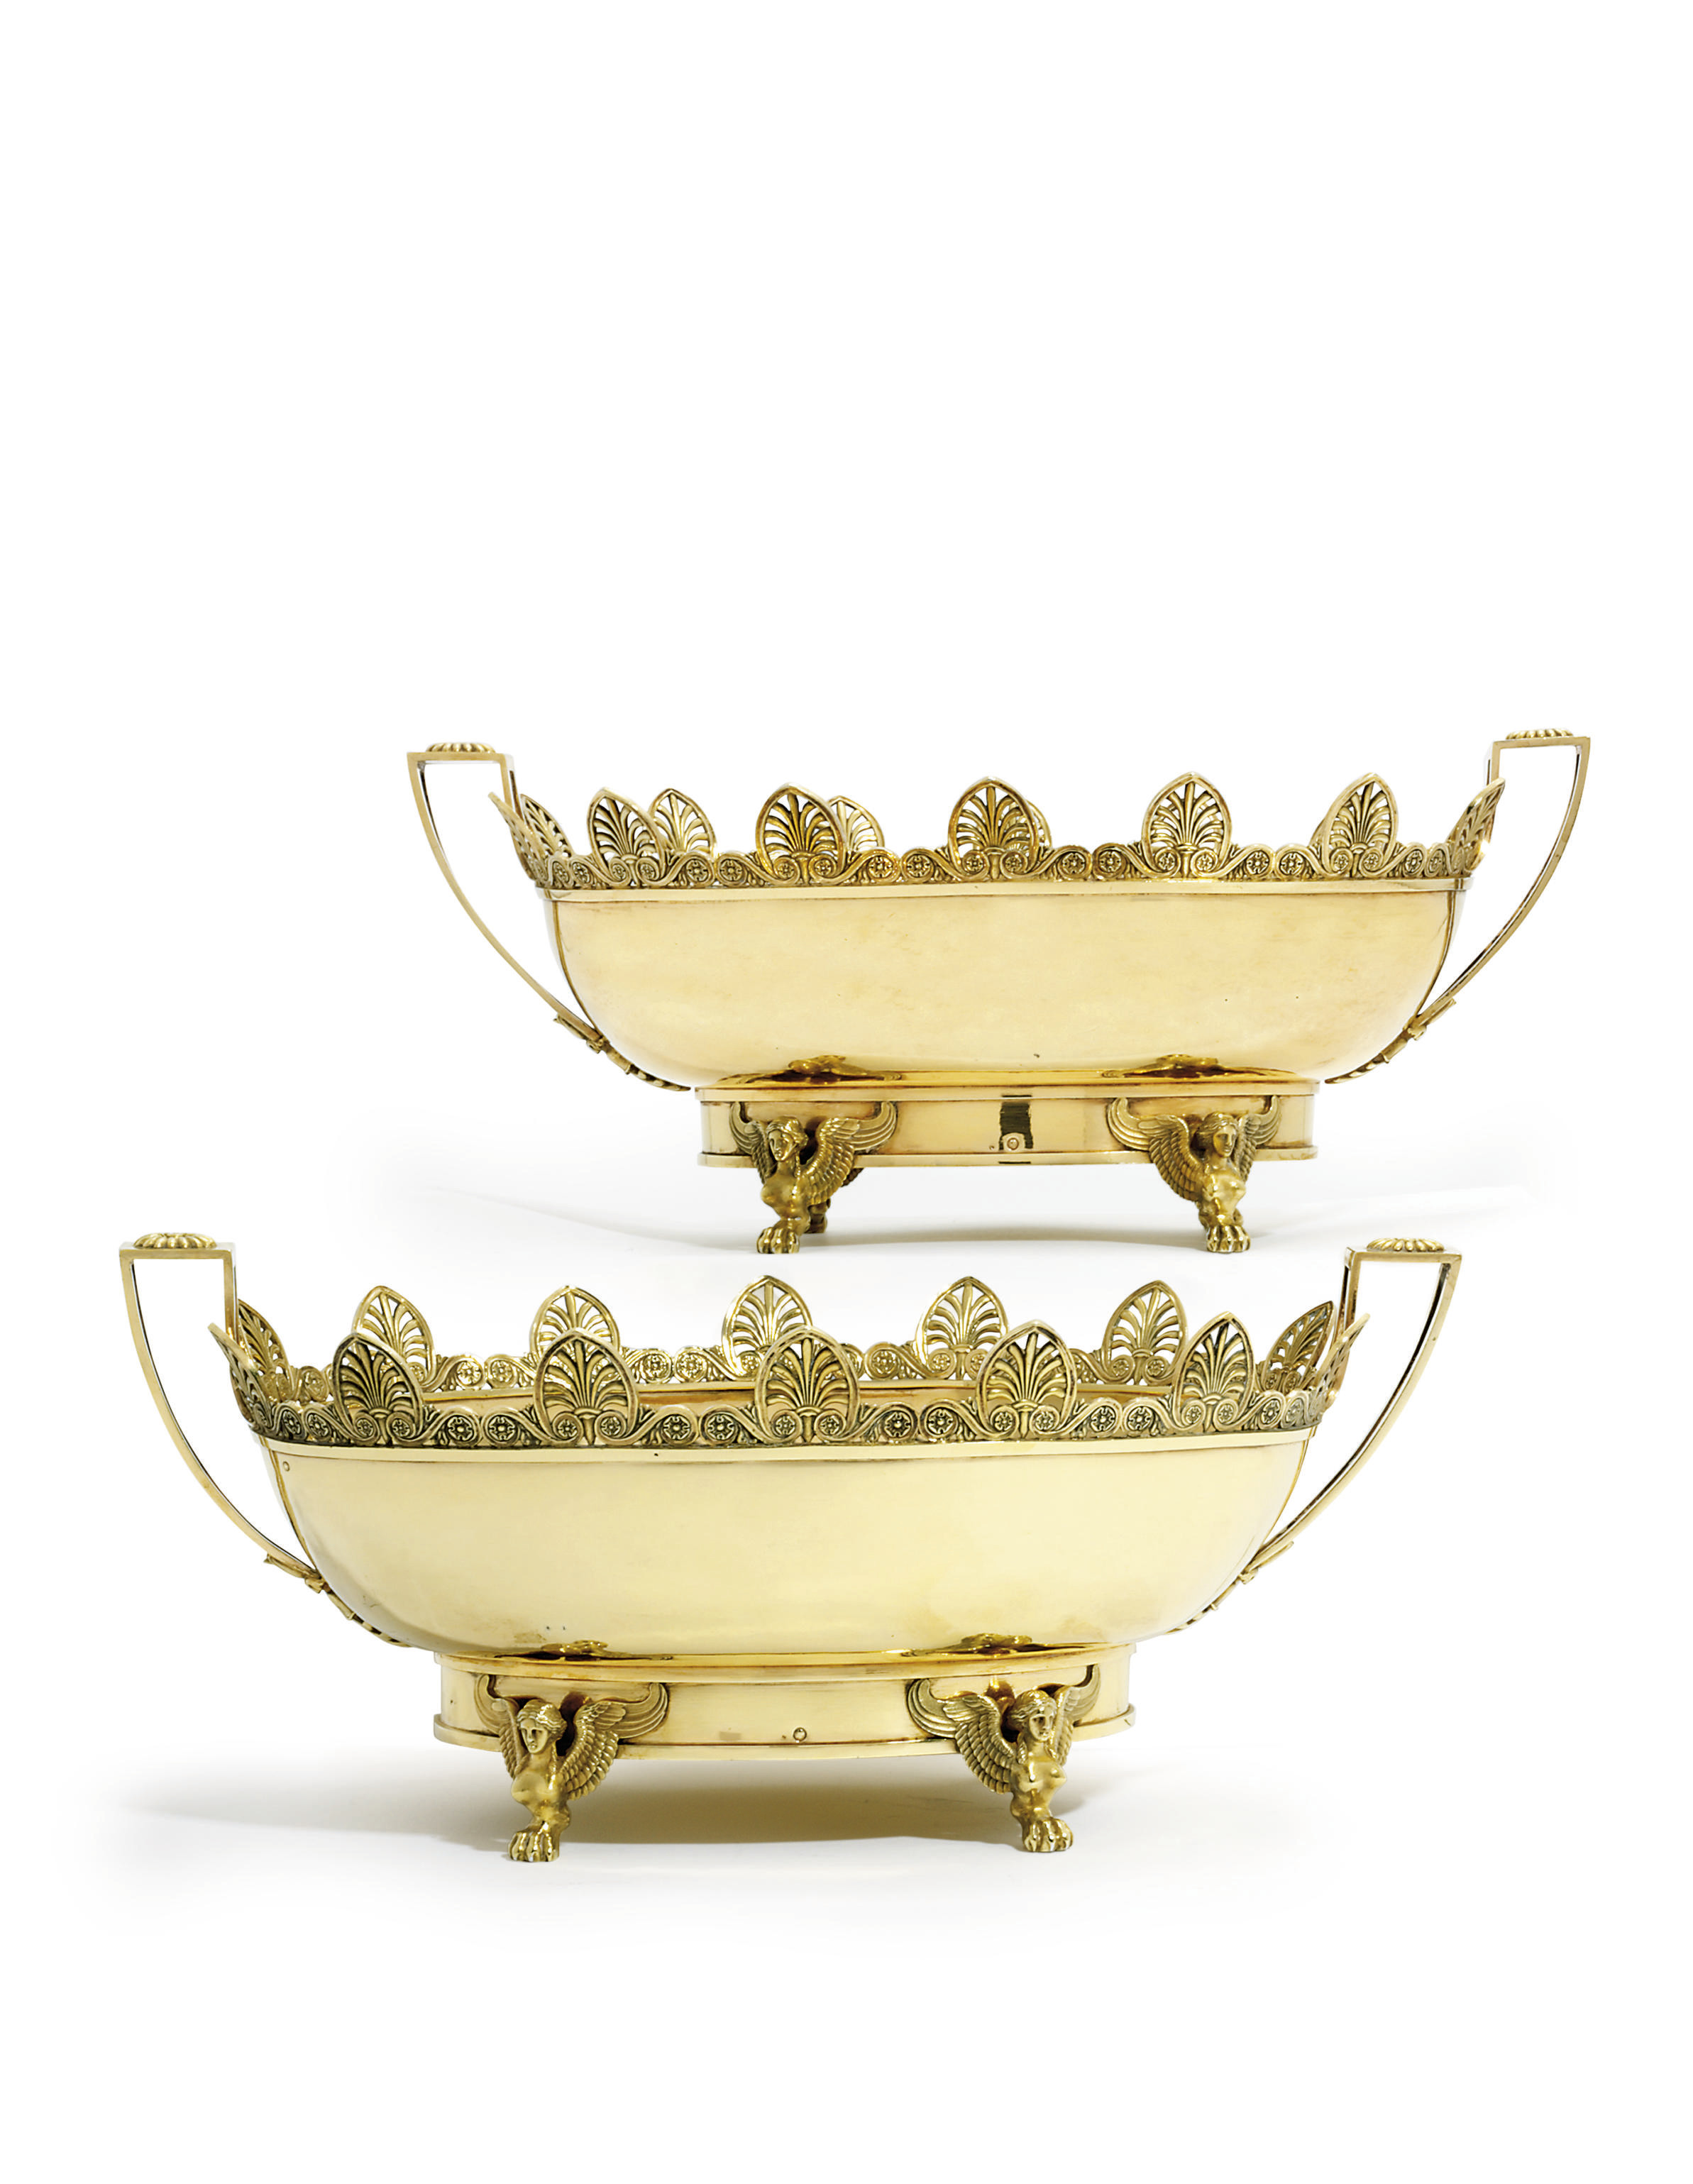 A PAIR OF FRENCH SILVER-GILT V